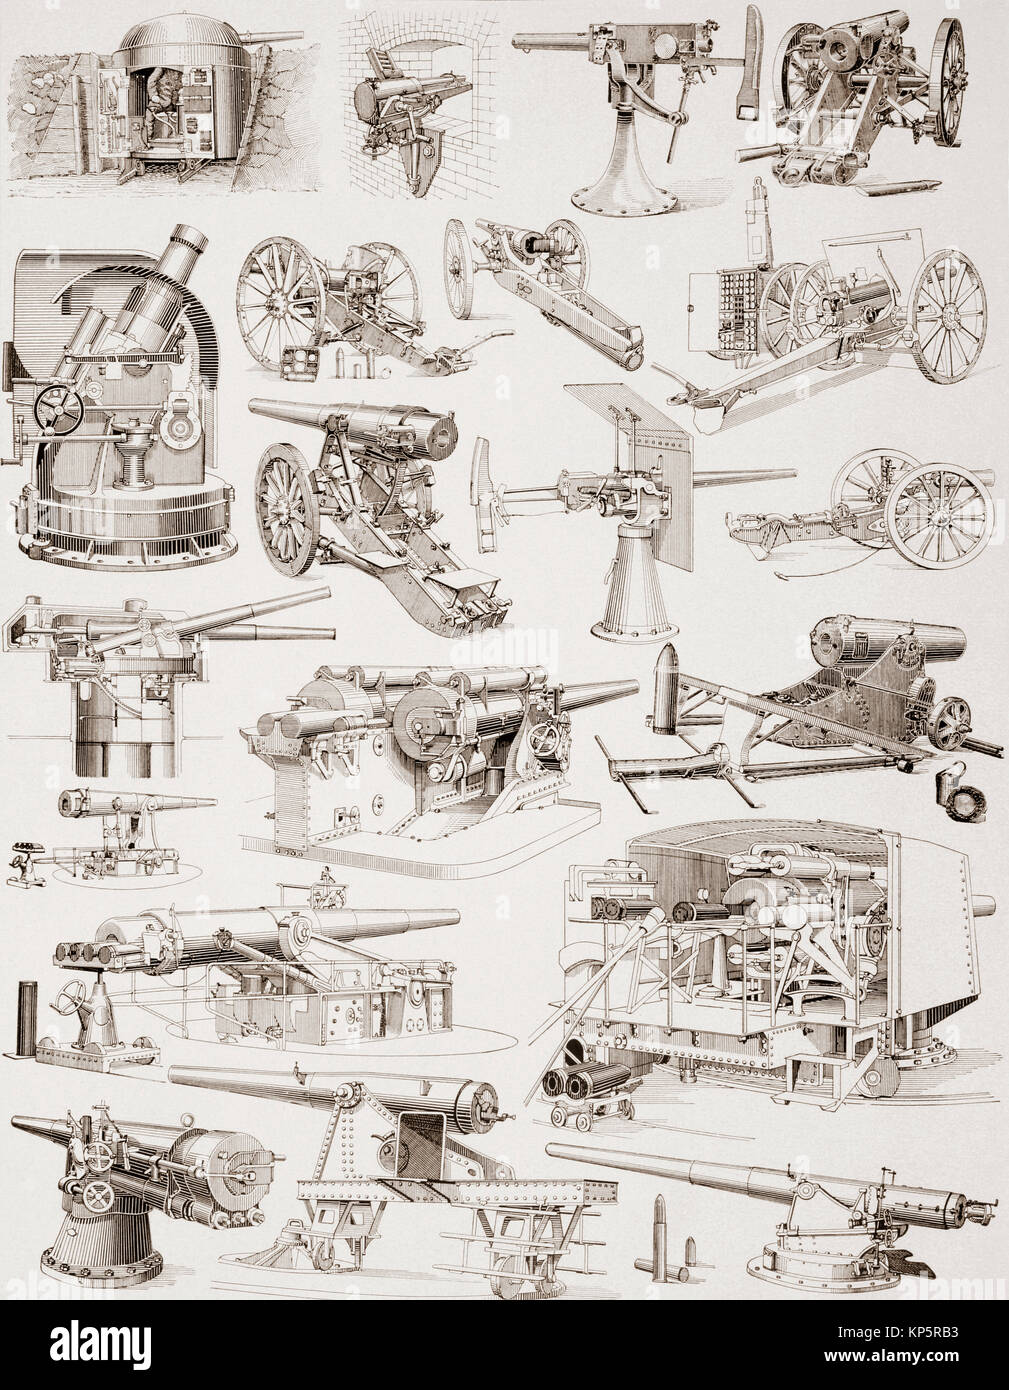 Late 19th, early 20th century heavy artillery.  From Enciclopedia Ilustrada Segui, published 1908. - Stock Image